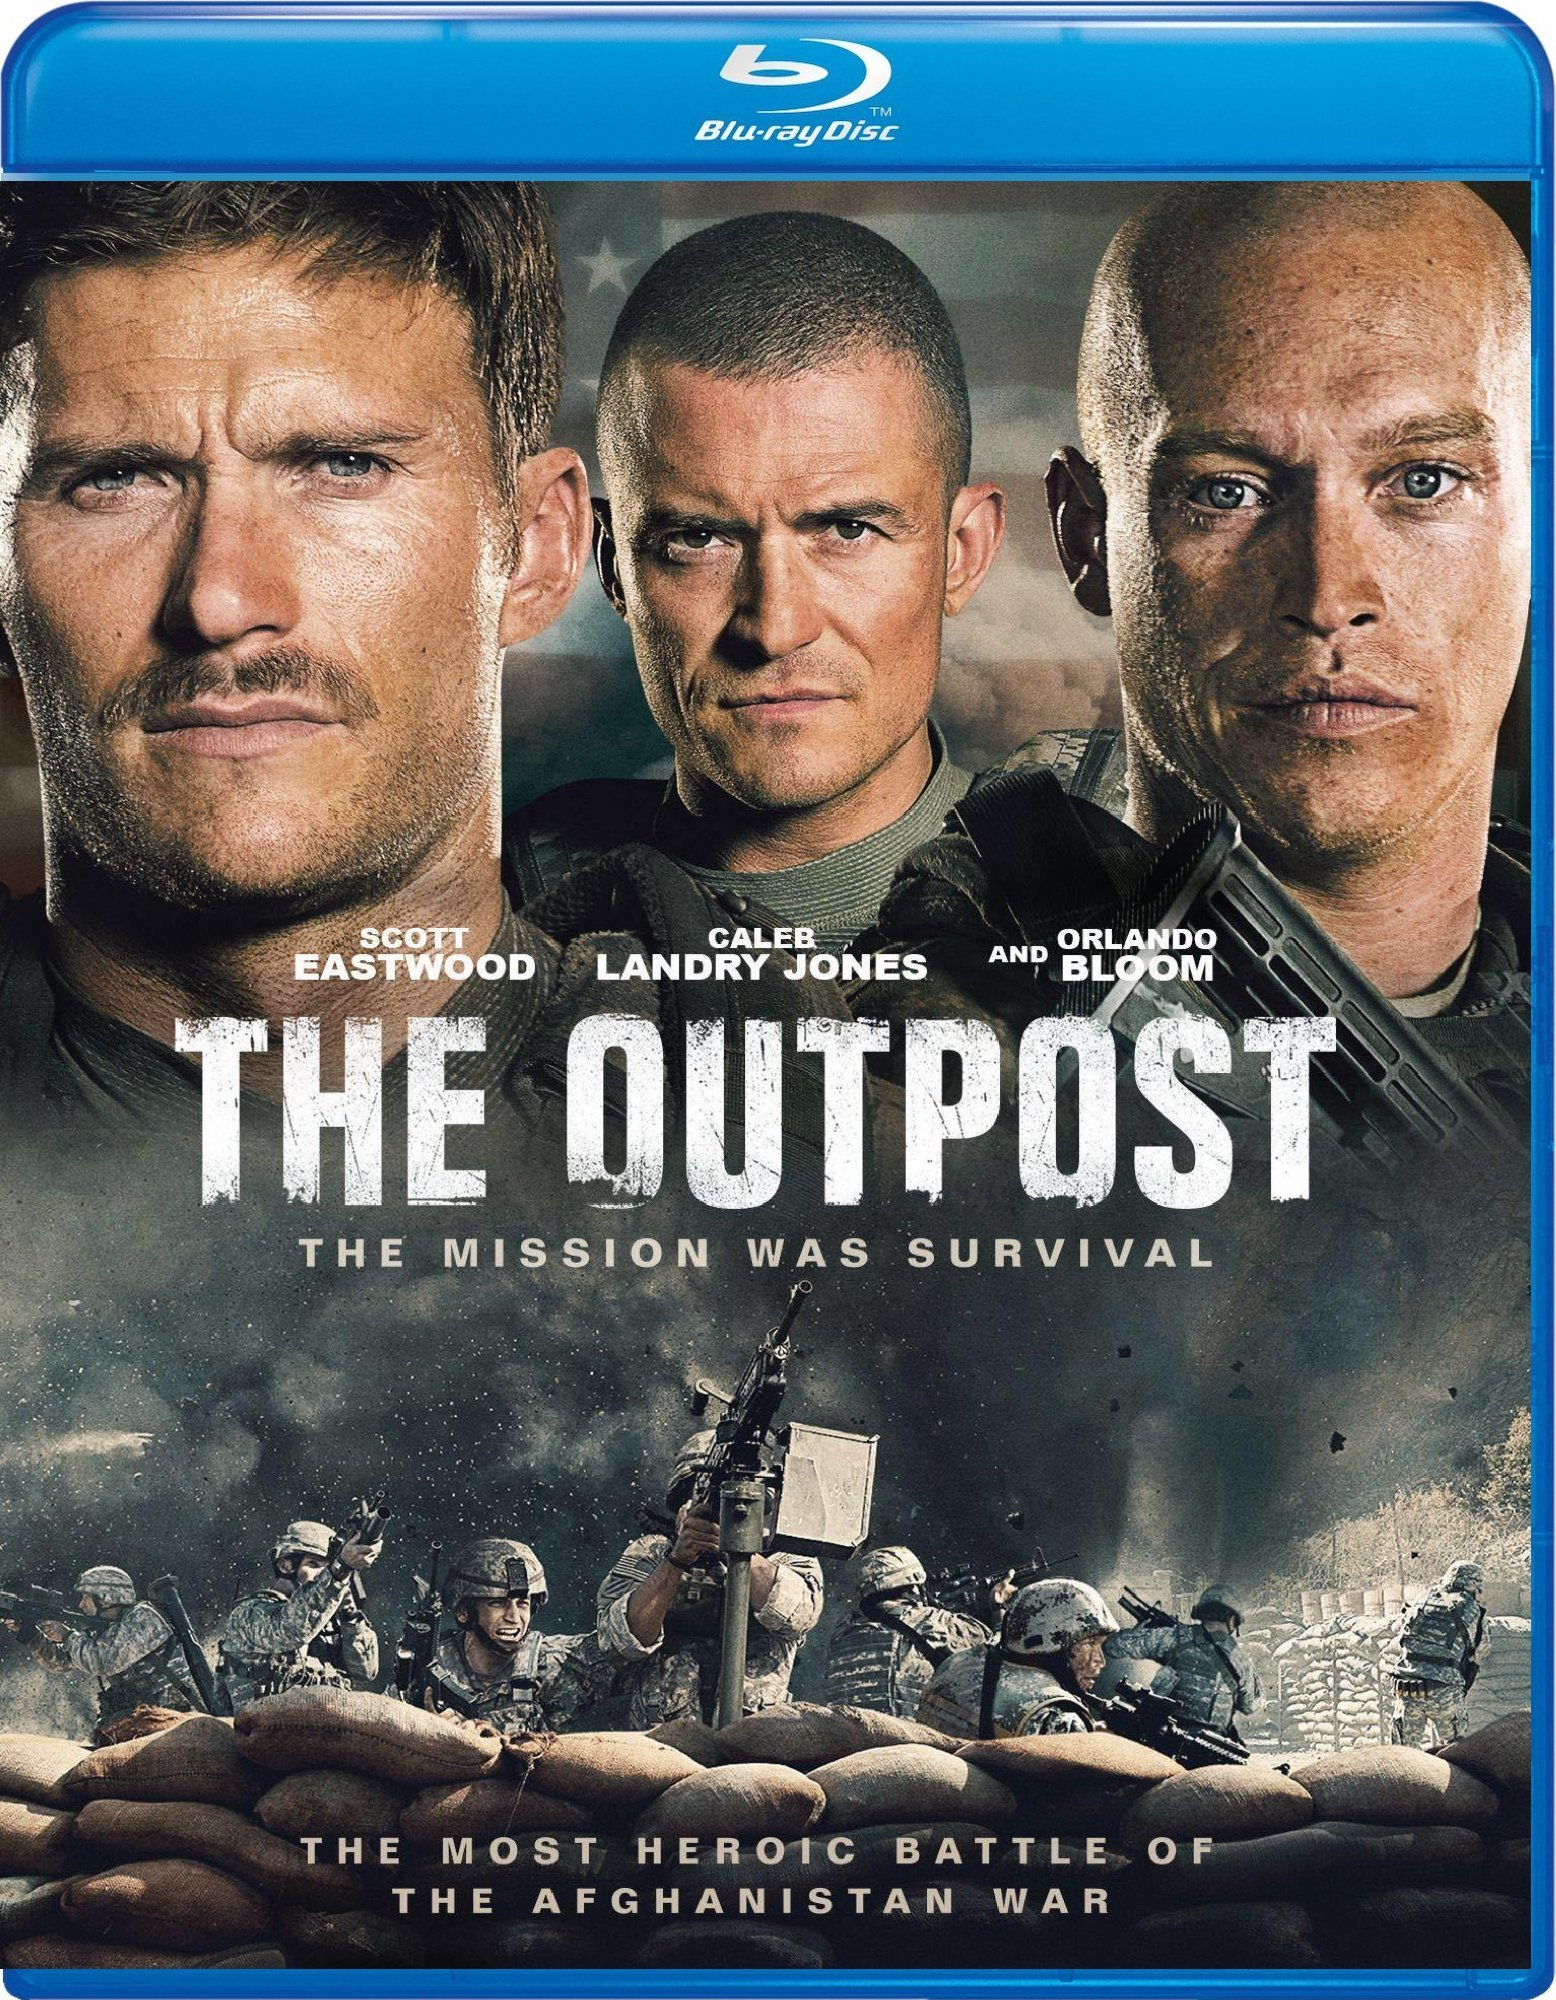 The Outpost (2020) Hindi ORG Dual Audio 720p BluRay 1.1GB Download